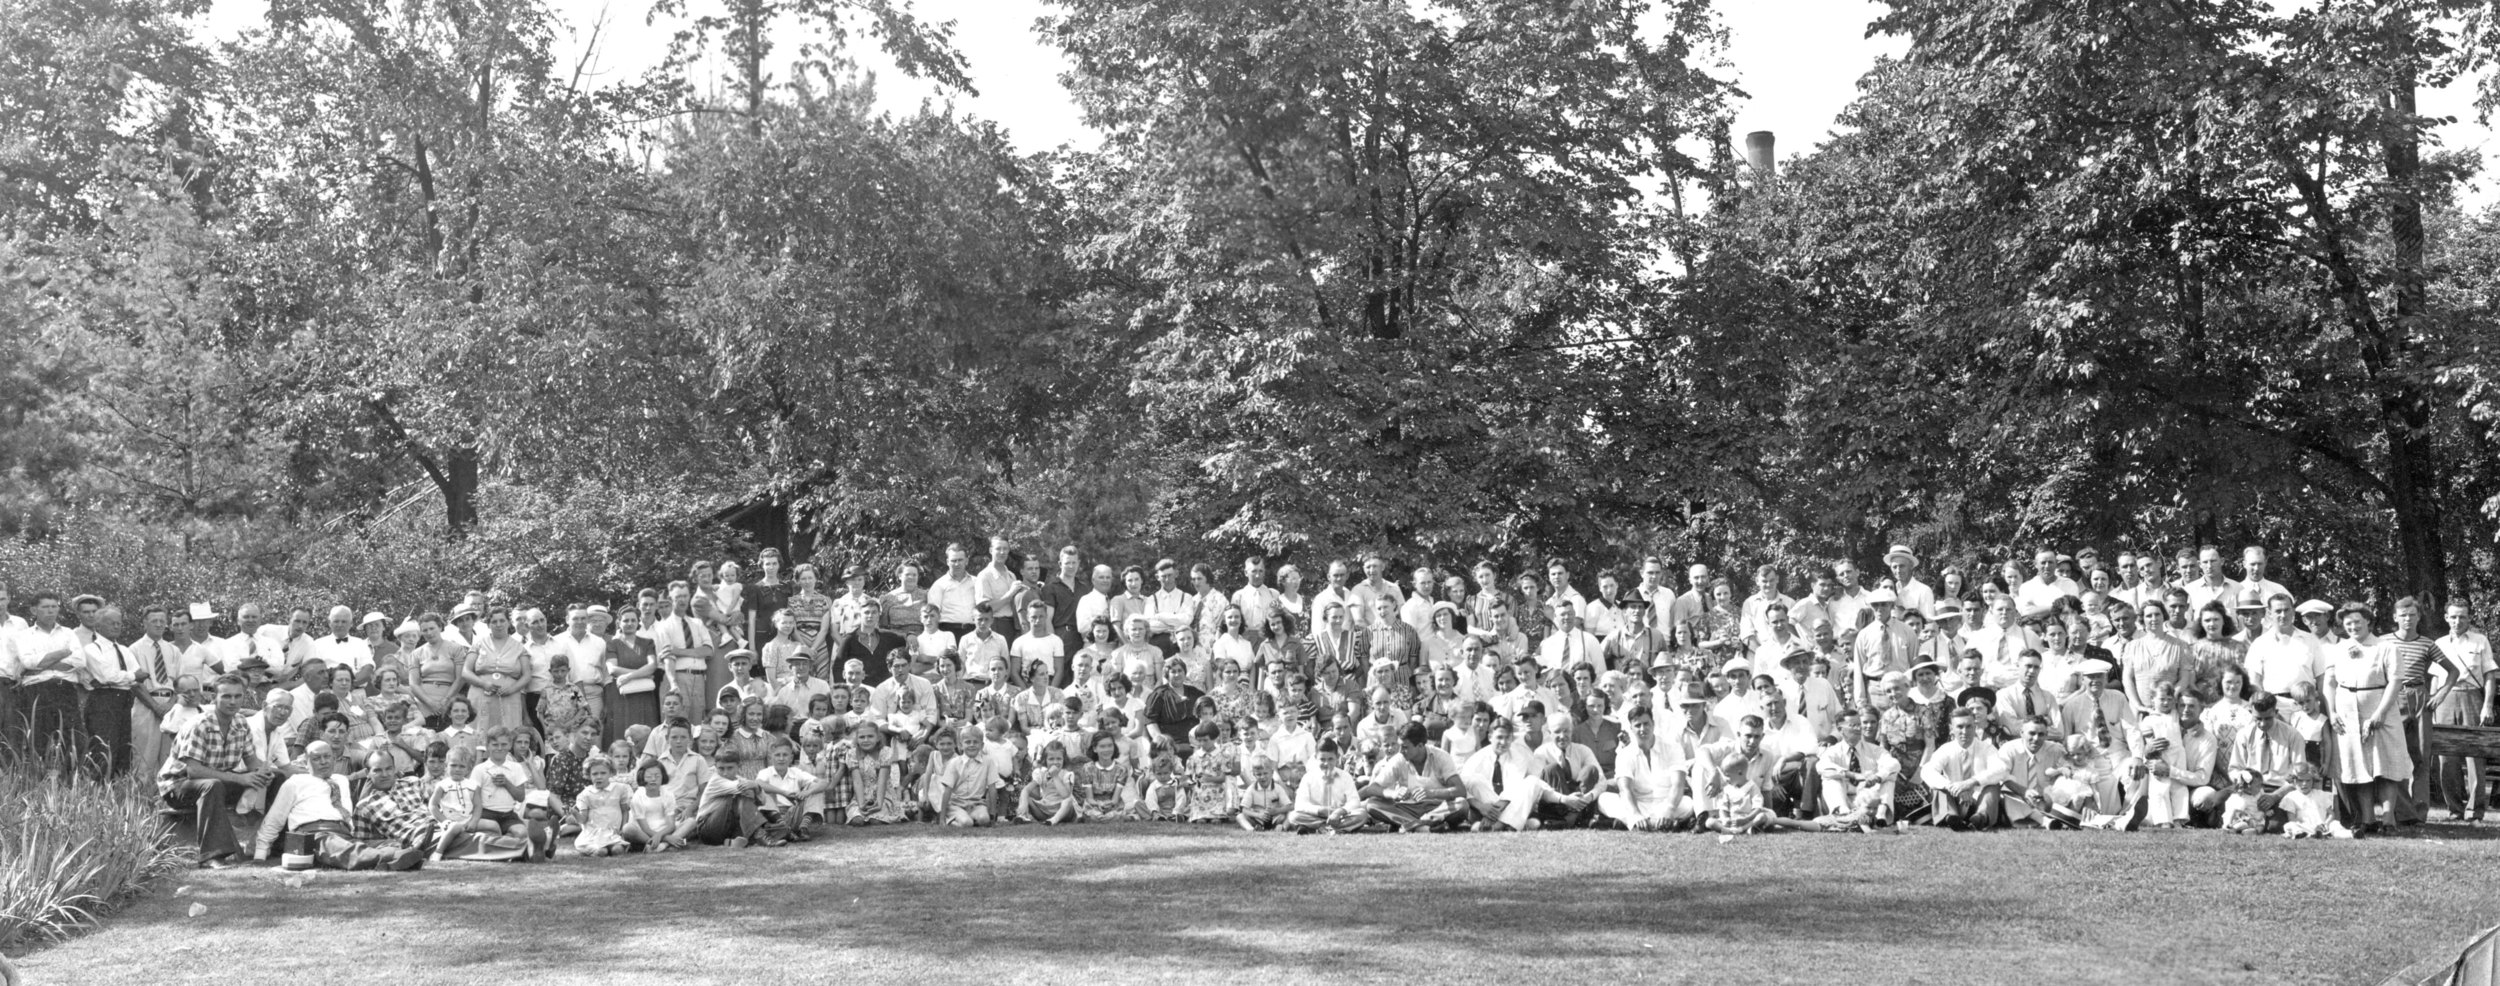 "This is the ""grand assembly"" of all mill workers and their families from the 1939 picnic held in the park."